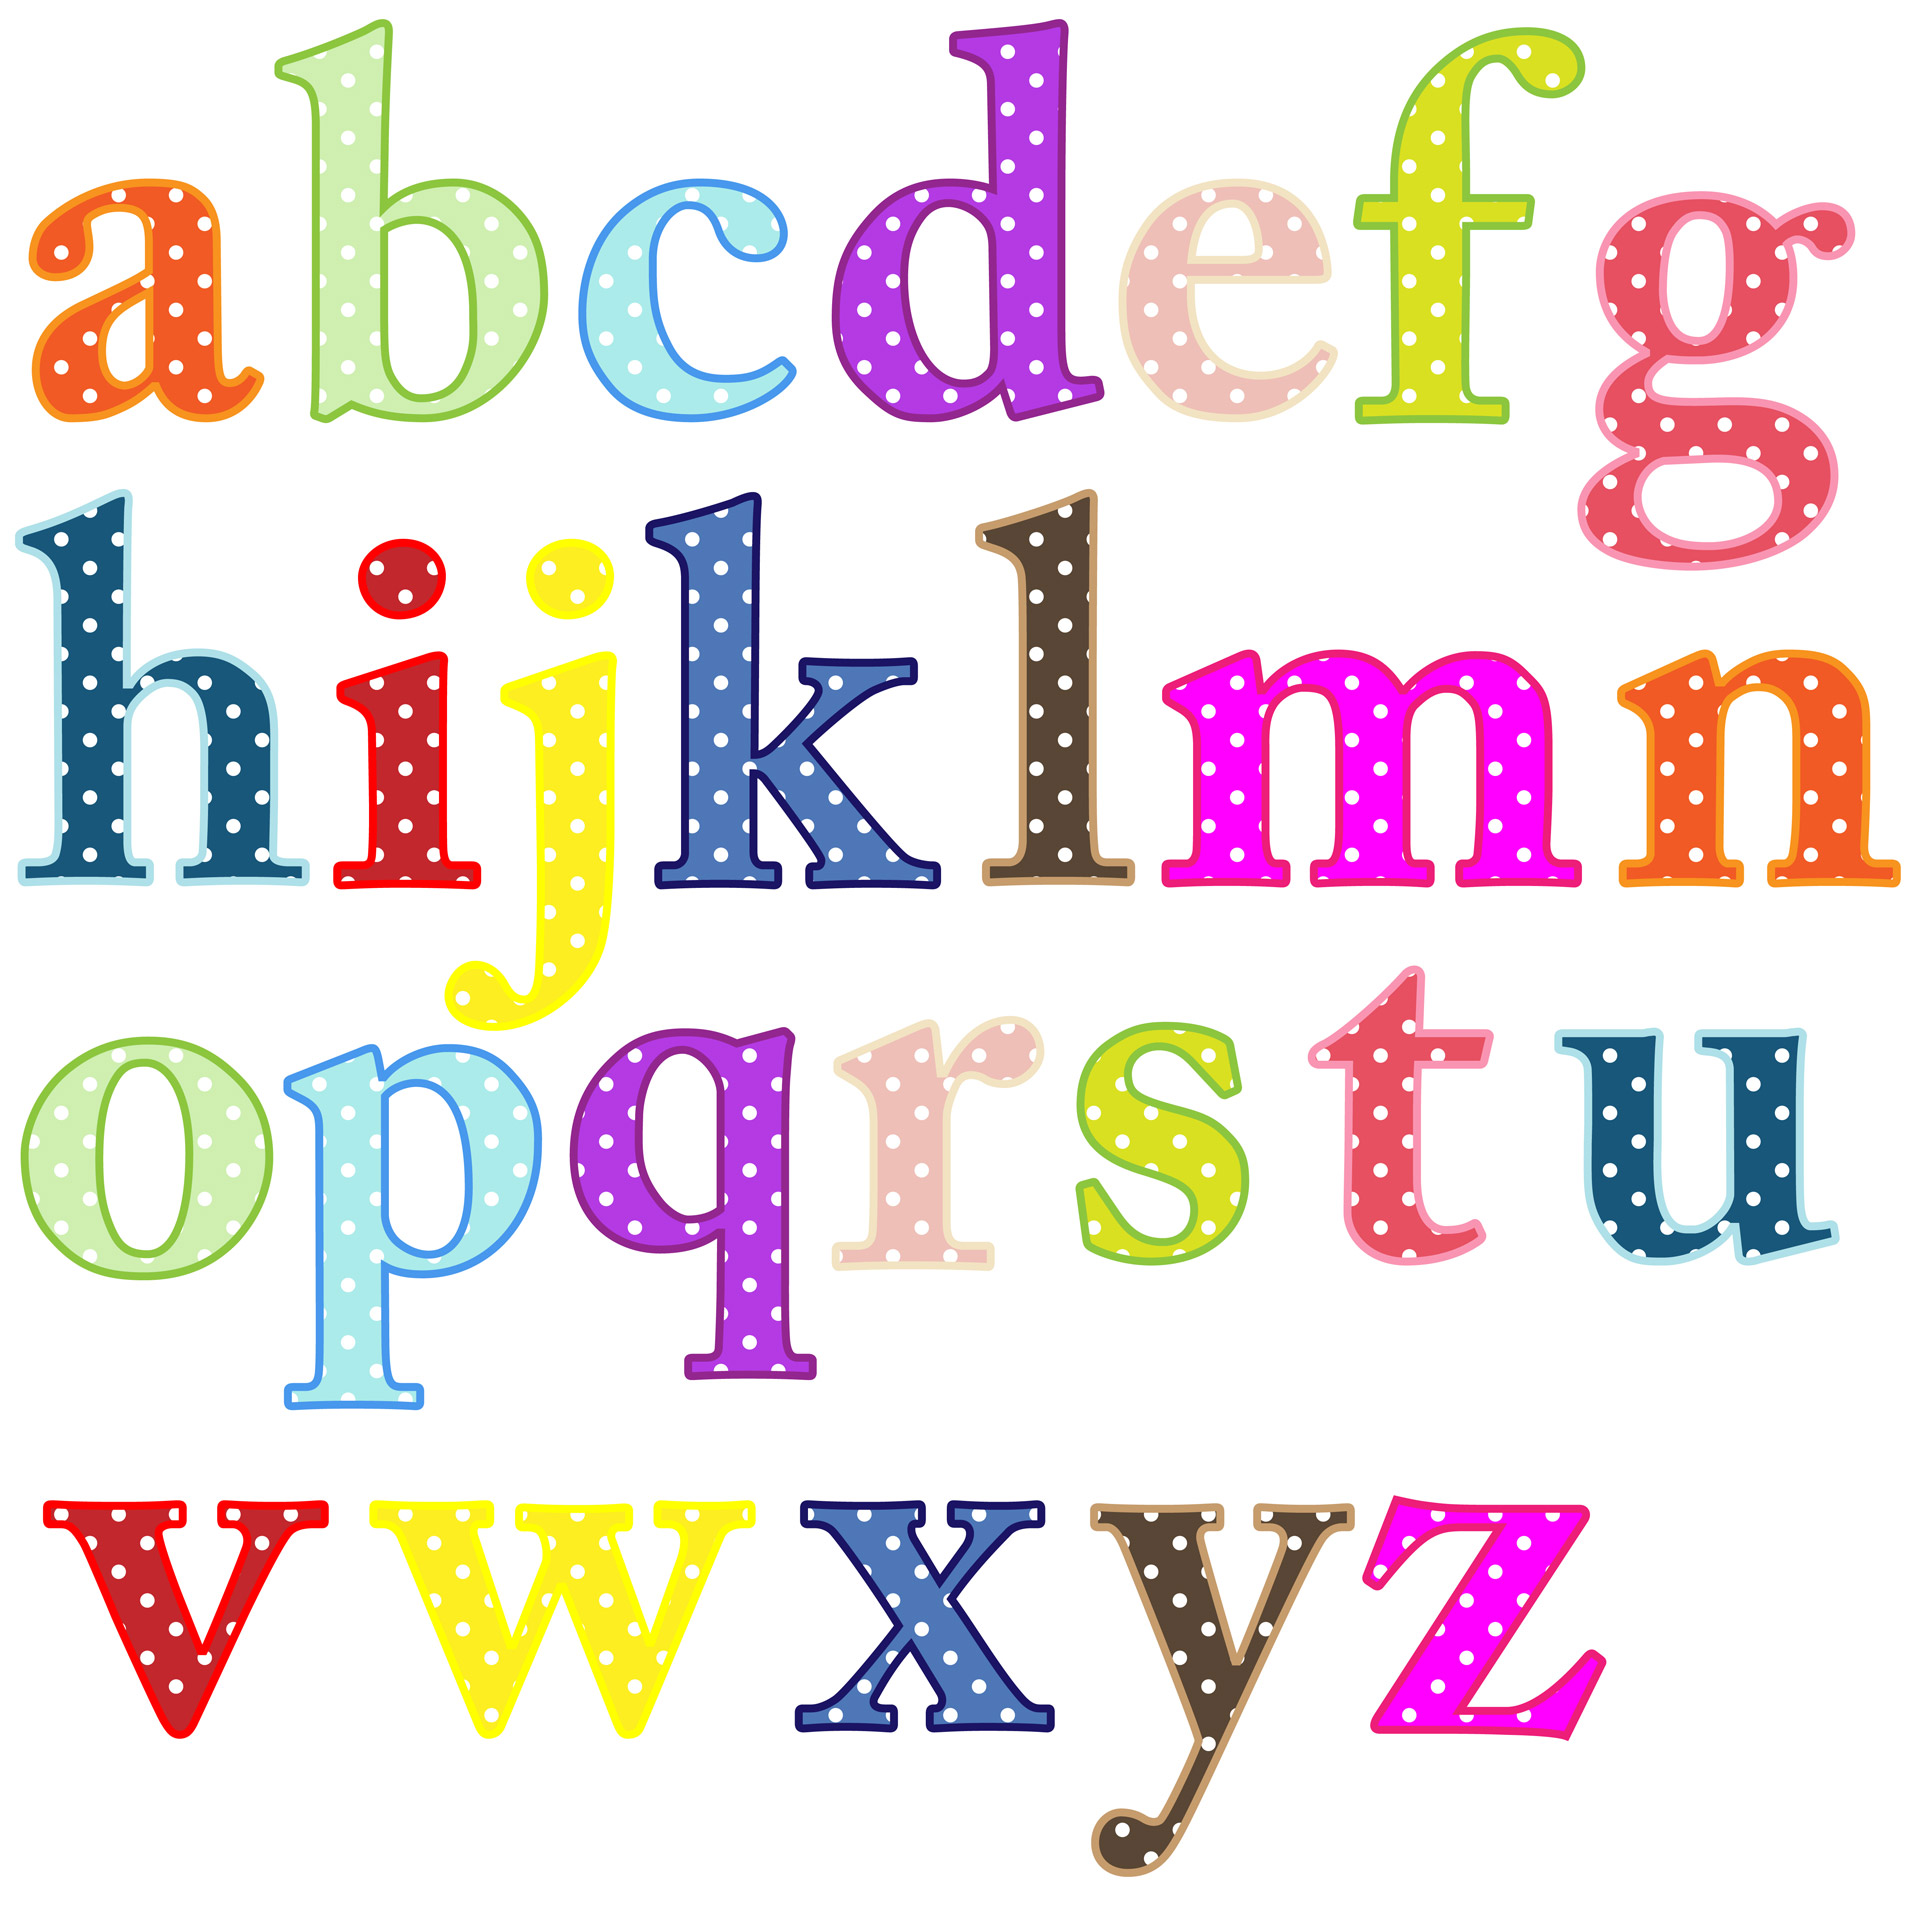 Alphabet Letters From Magazine Free Stock Photo.